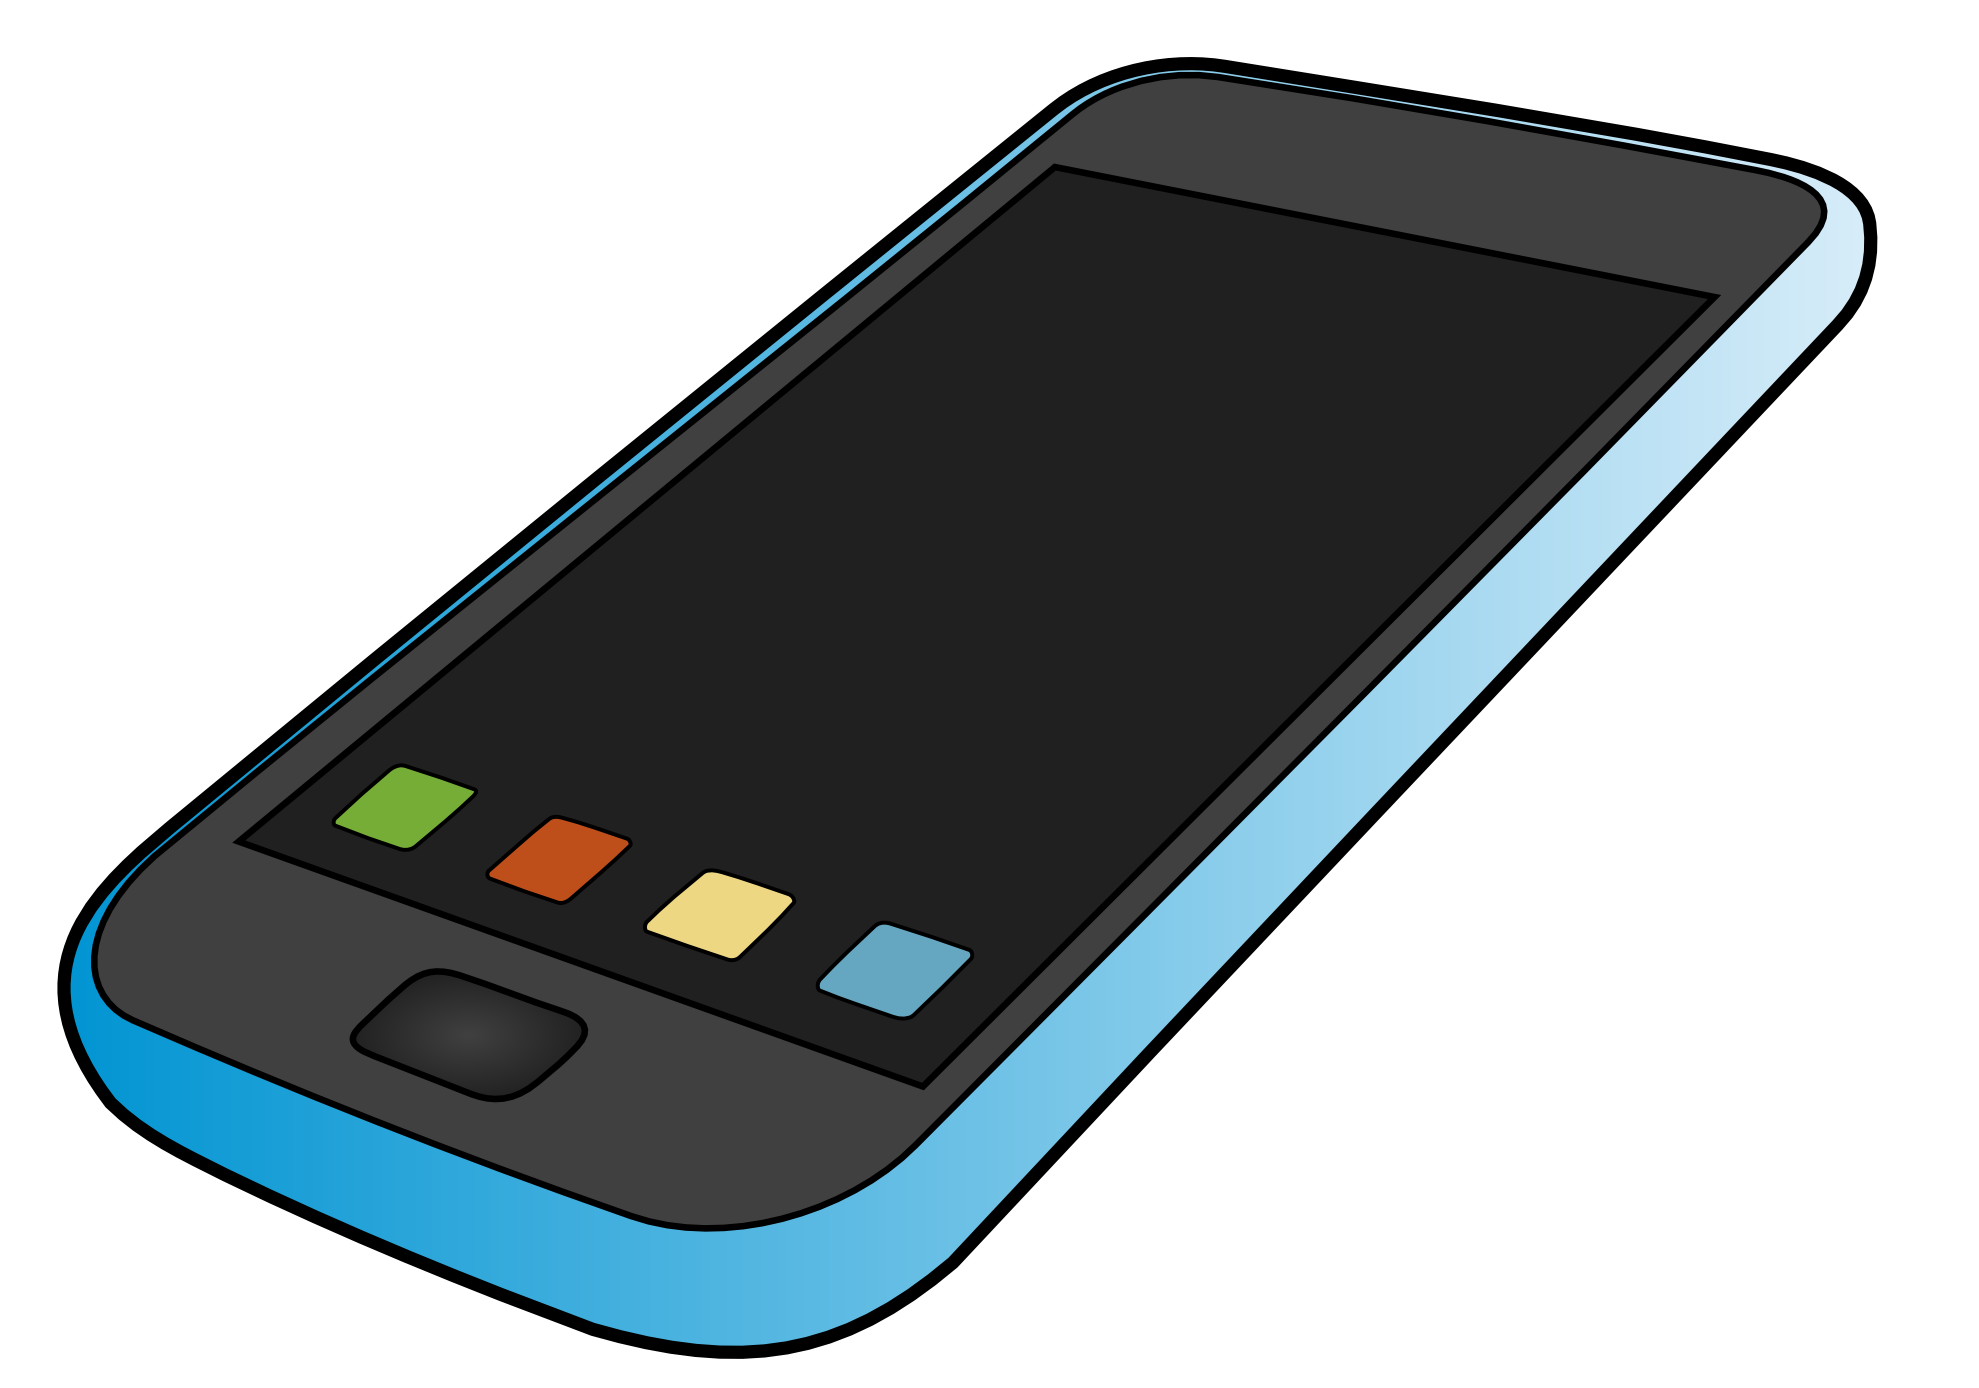 Iphone cell phone clipart free .